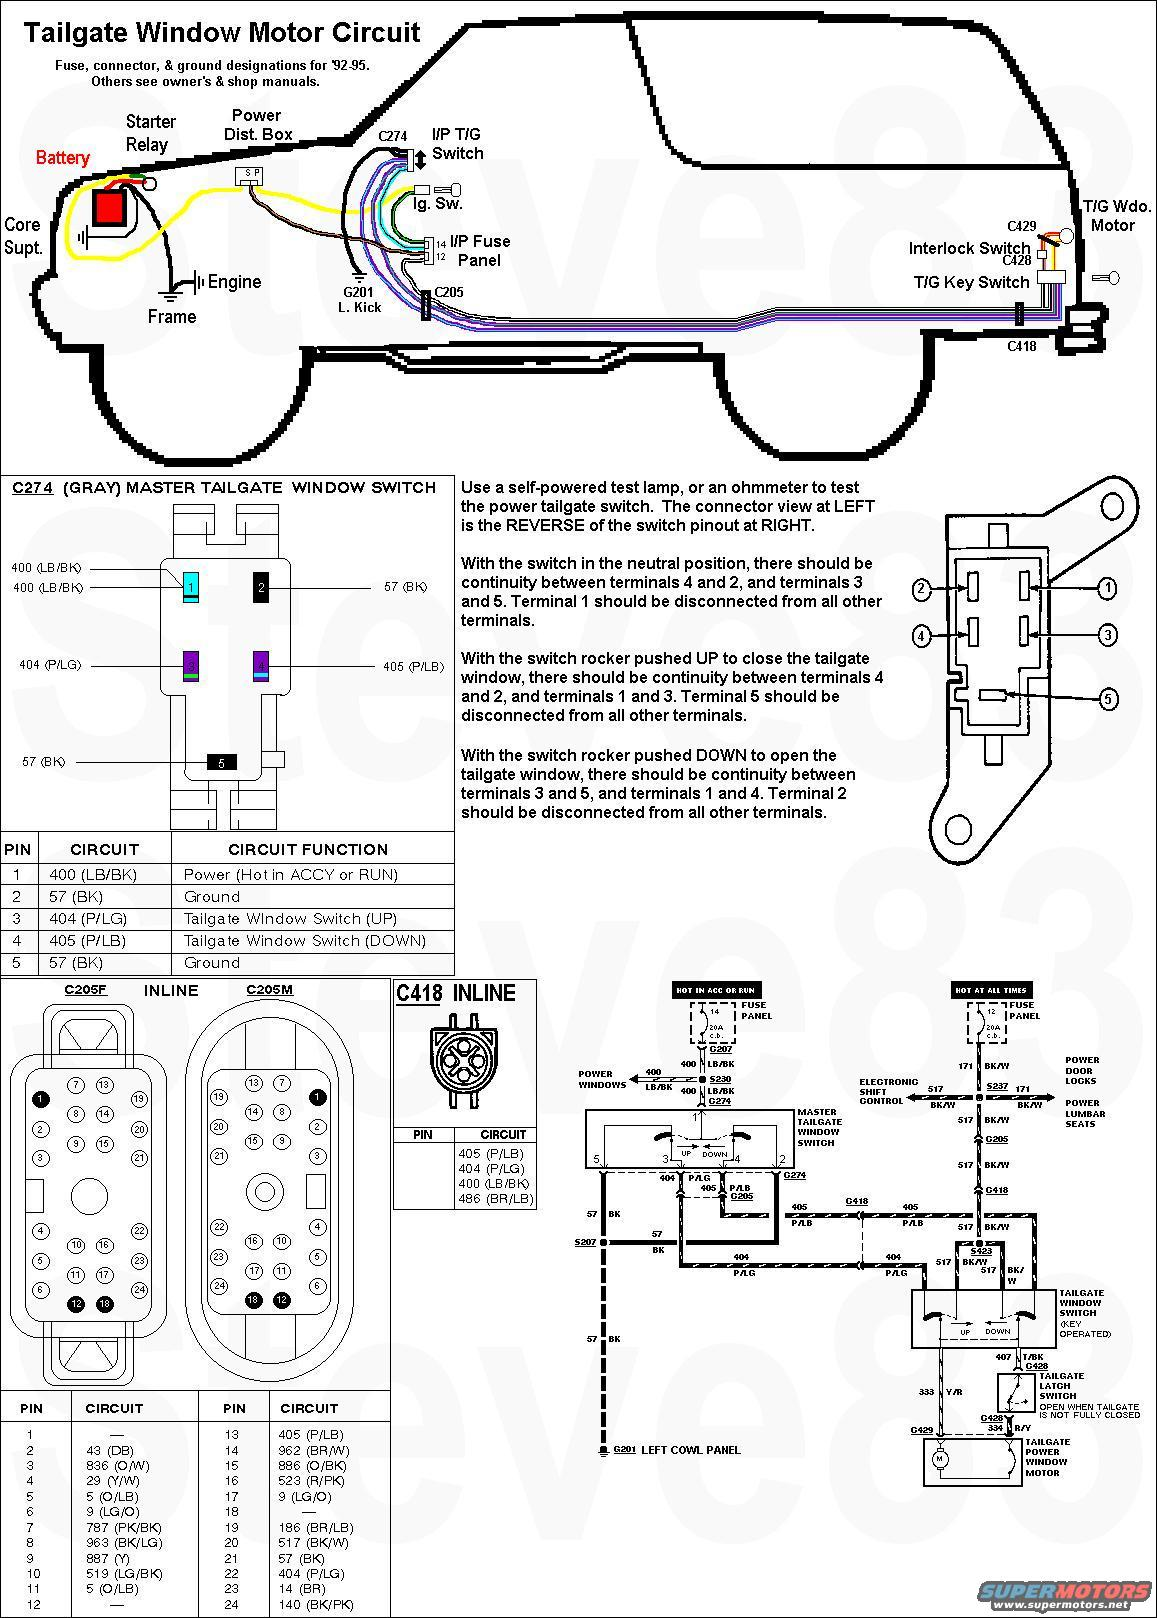 how do i bypass tailgate safety switch ford bronco forum wiring diagram dash switch test all tg connector locations diagram in 92 96 source by steve83 steve that dirty old truck at supermotors net ·